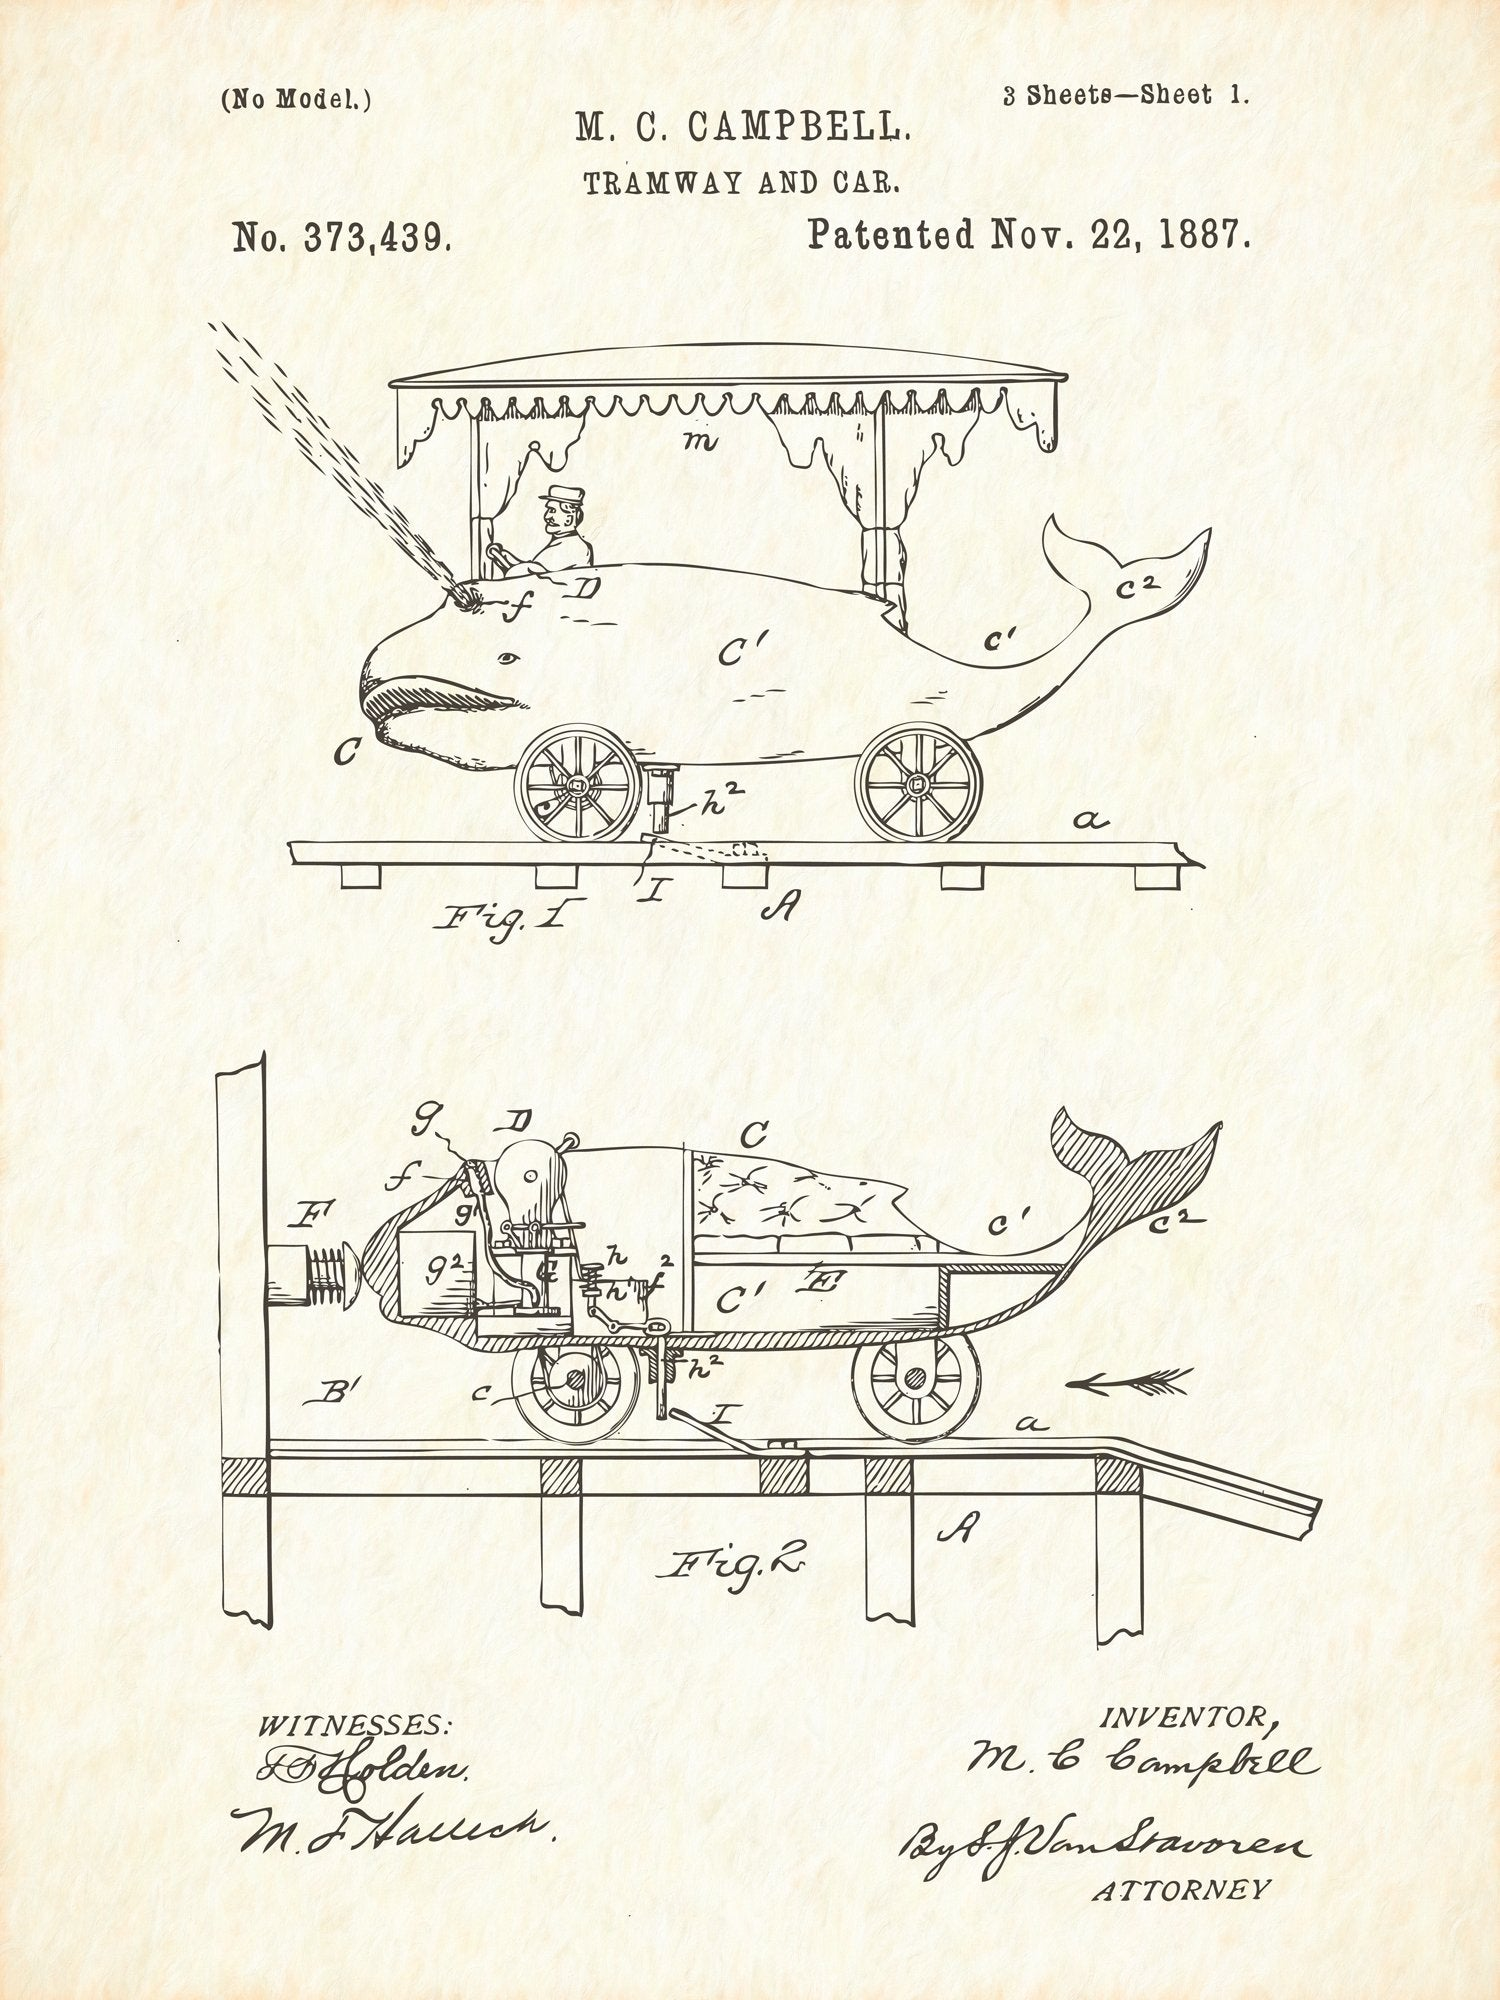 U.S. Patent No. 373439-1 Tramway and Car Reworked, Series 1